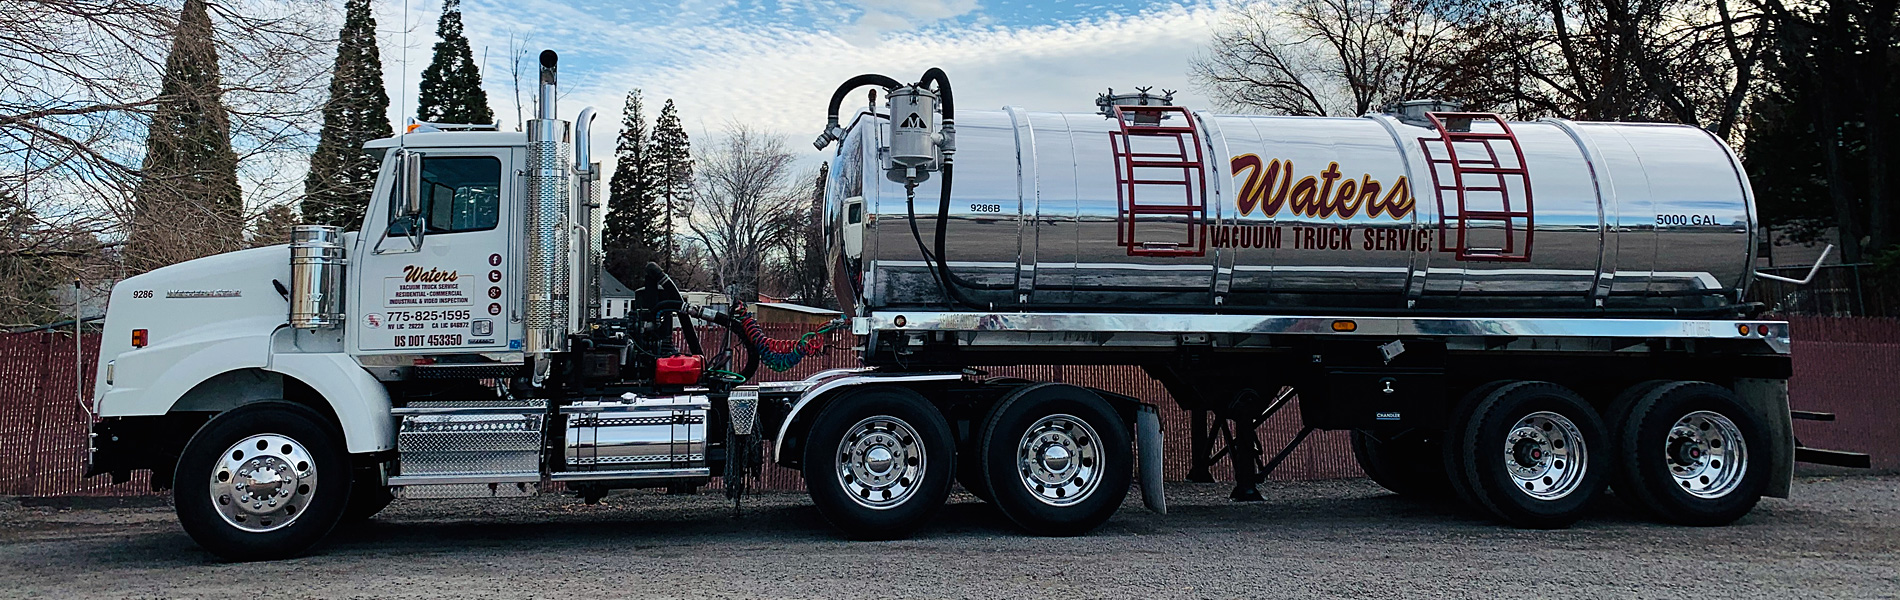 Waters Vacuum Truck Service - Northern Nevada